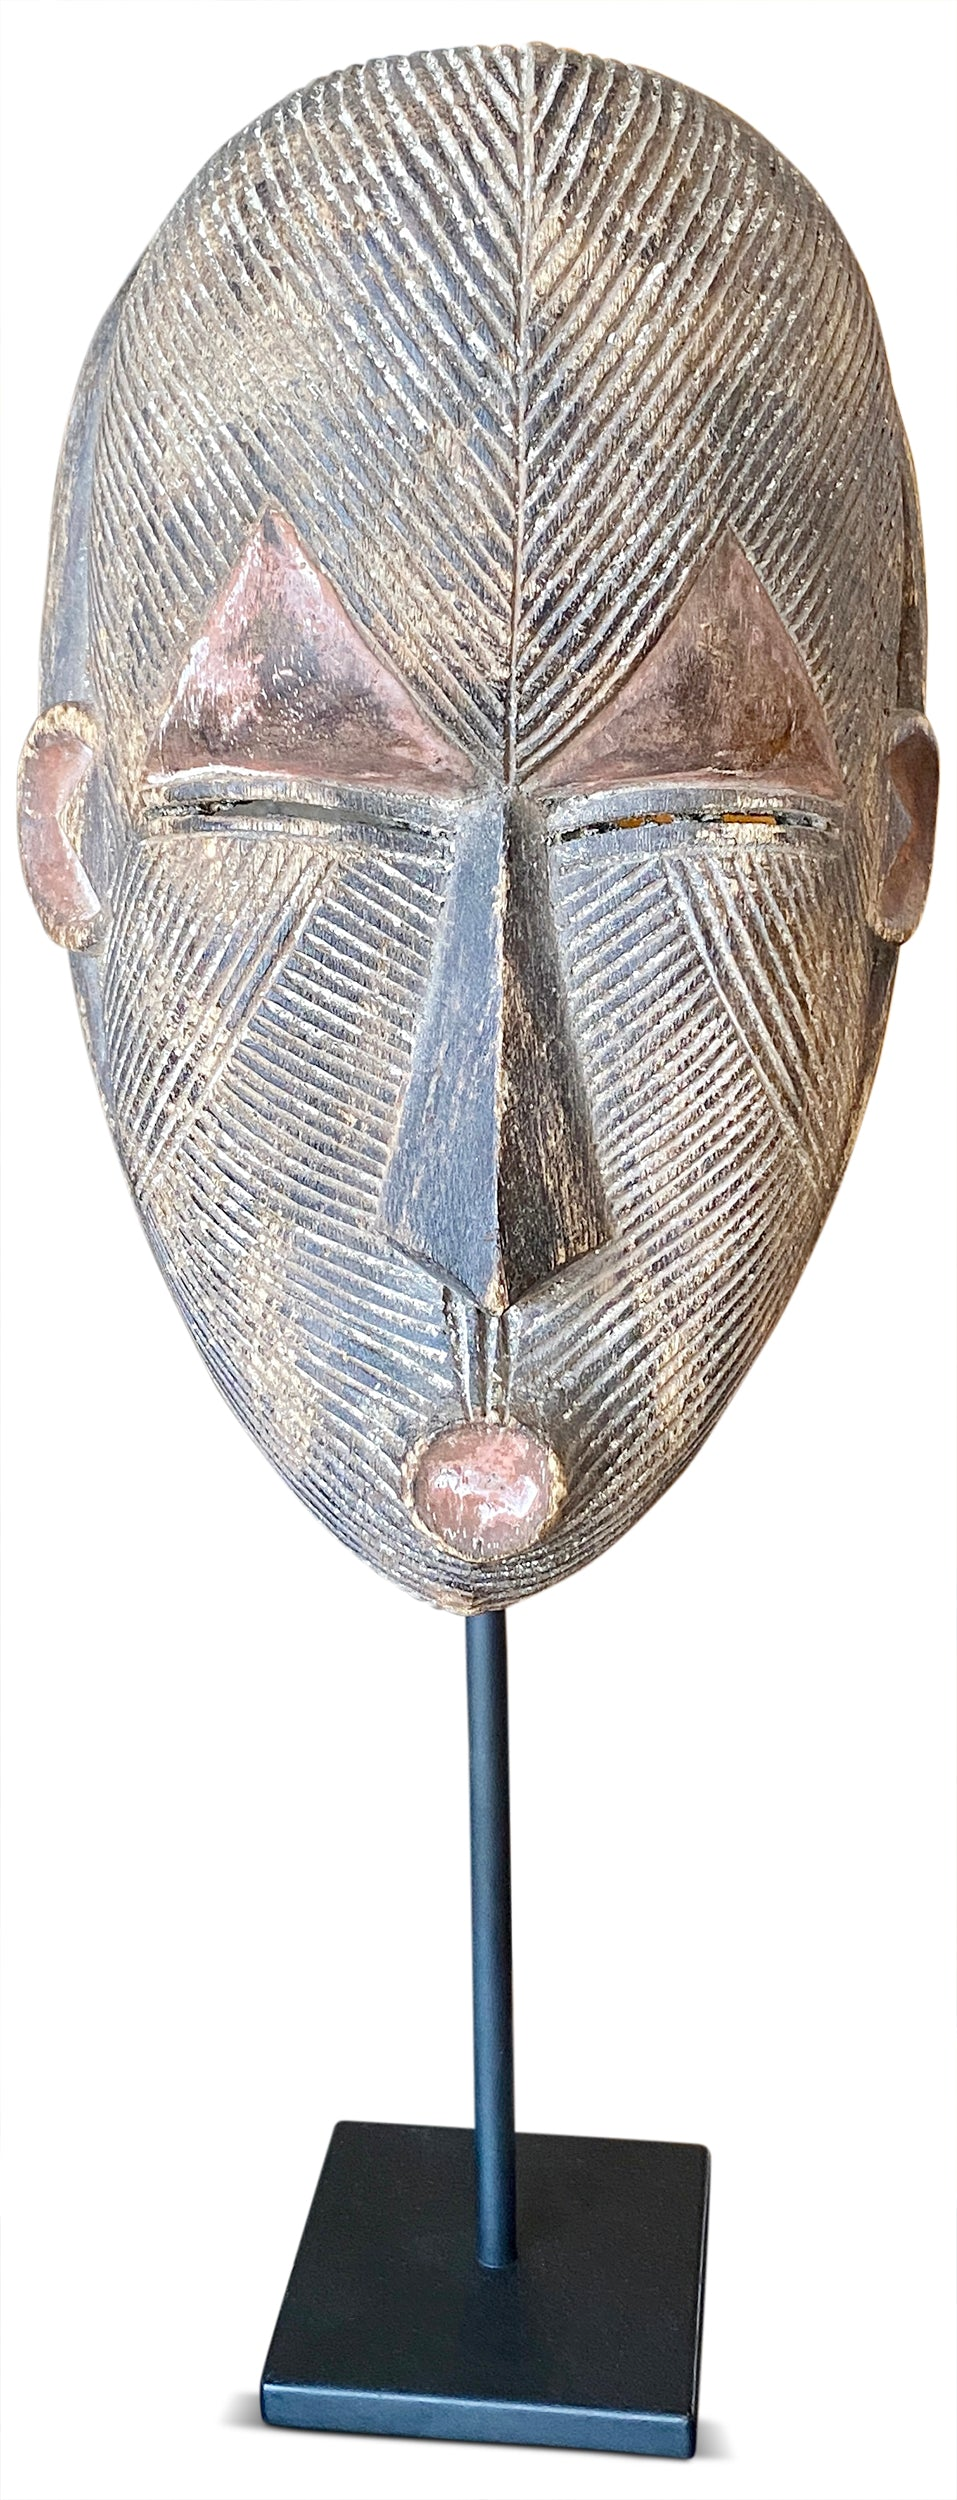 Antique African Mask on Stand